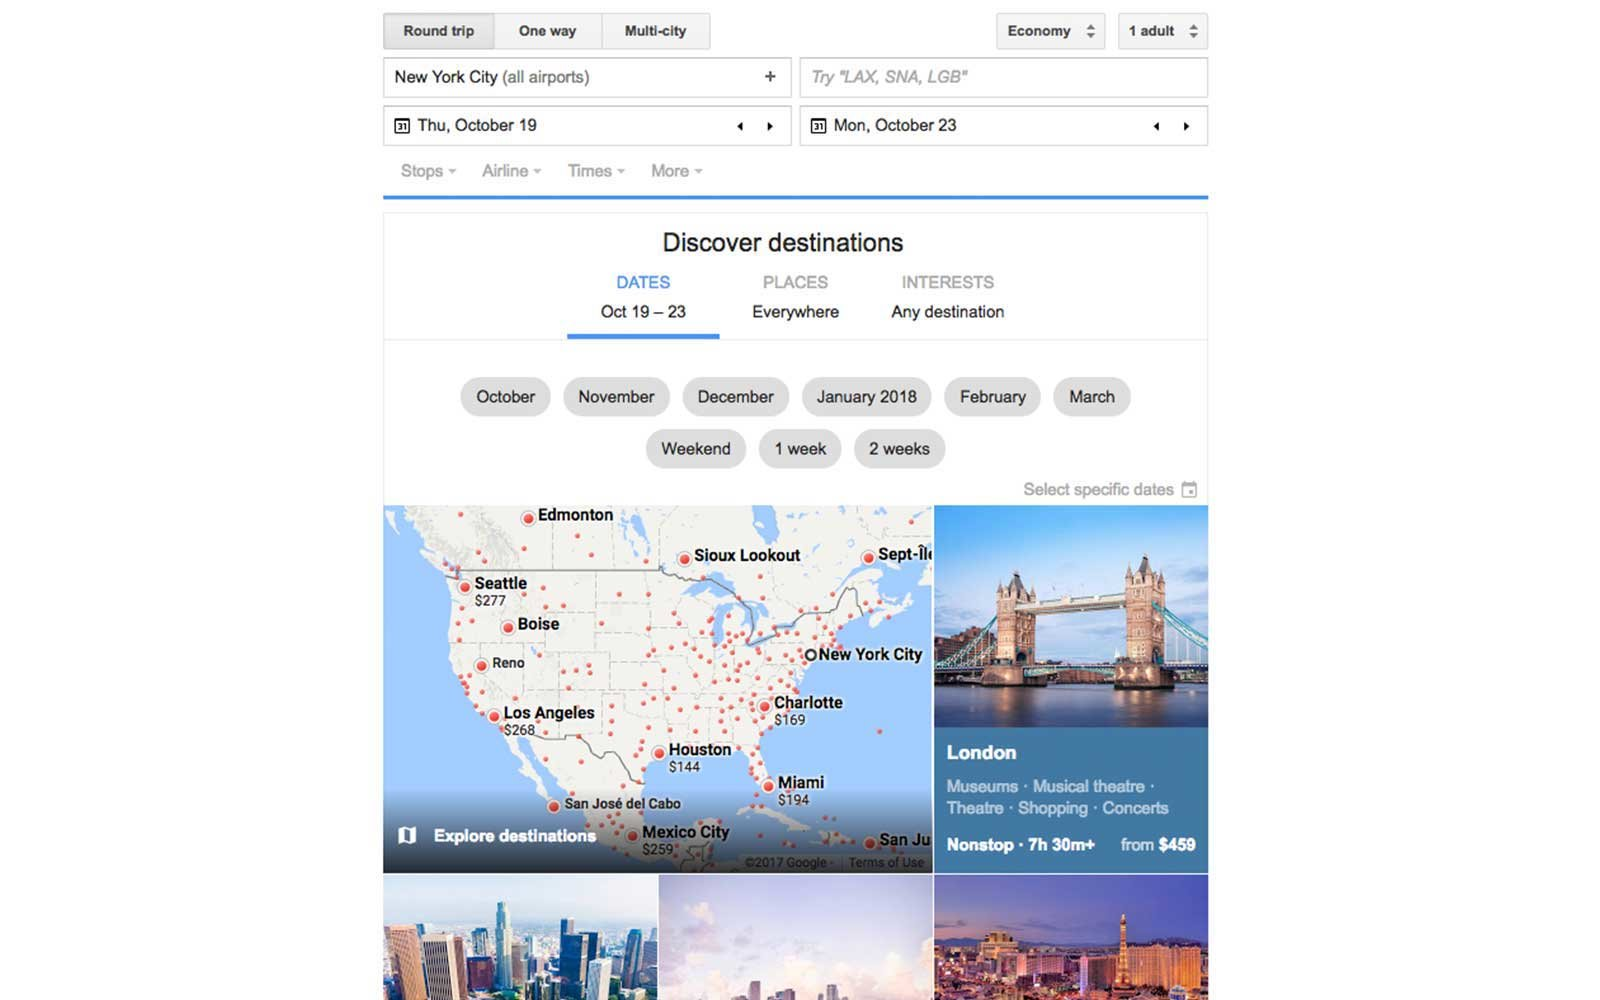 Google Flights Discover Destinations